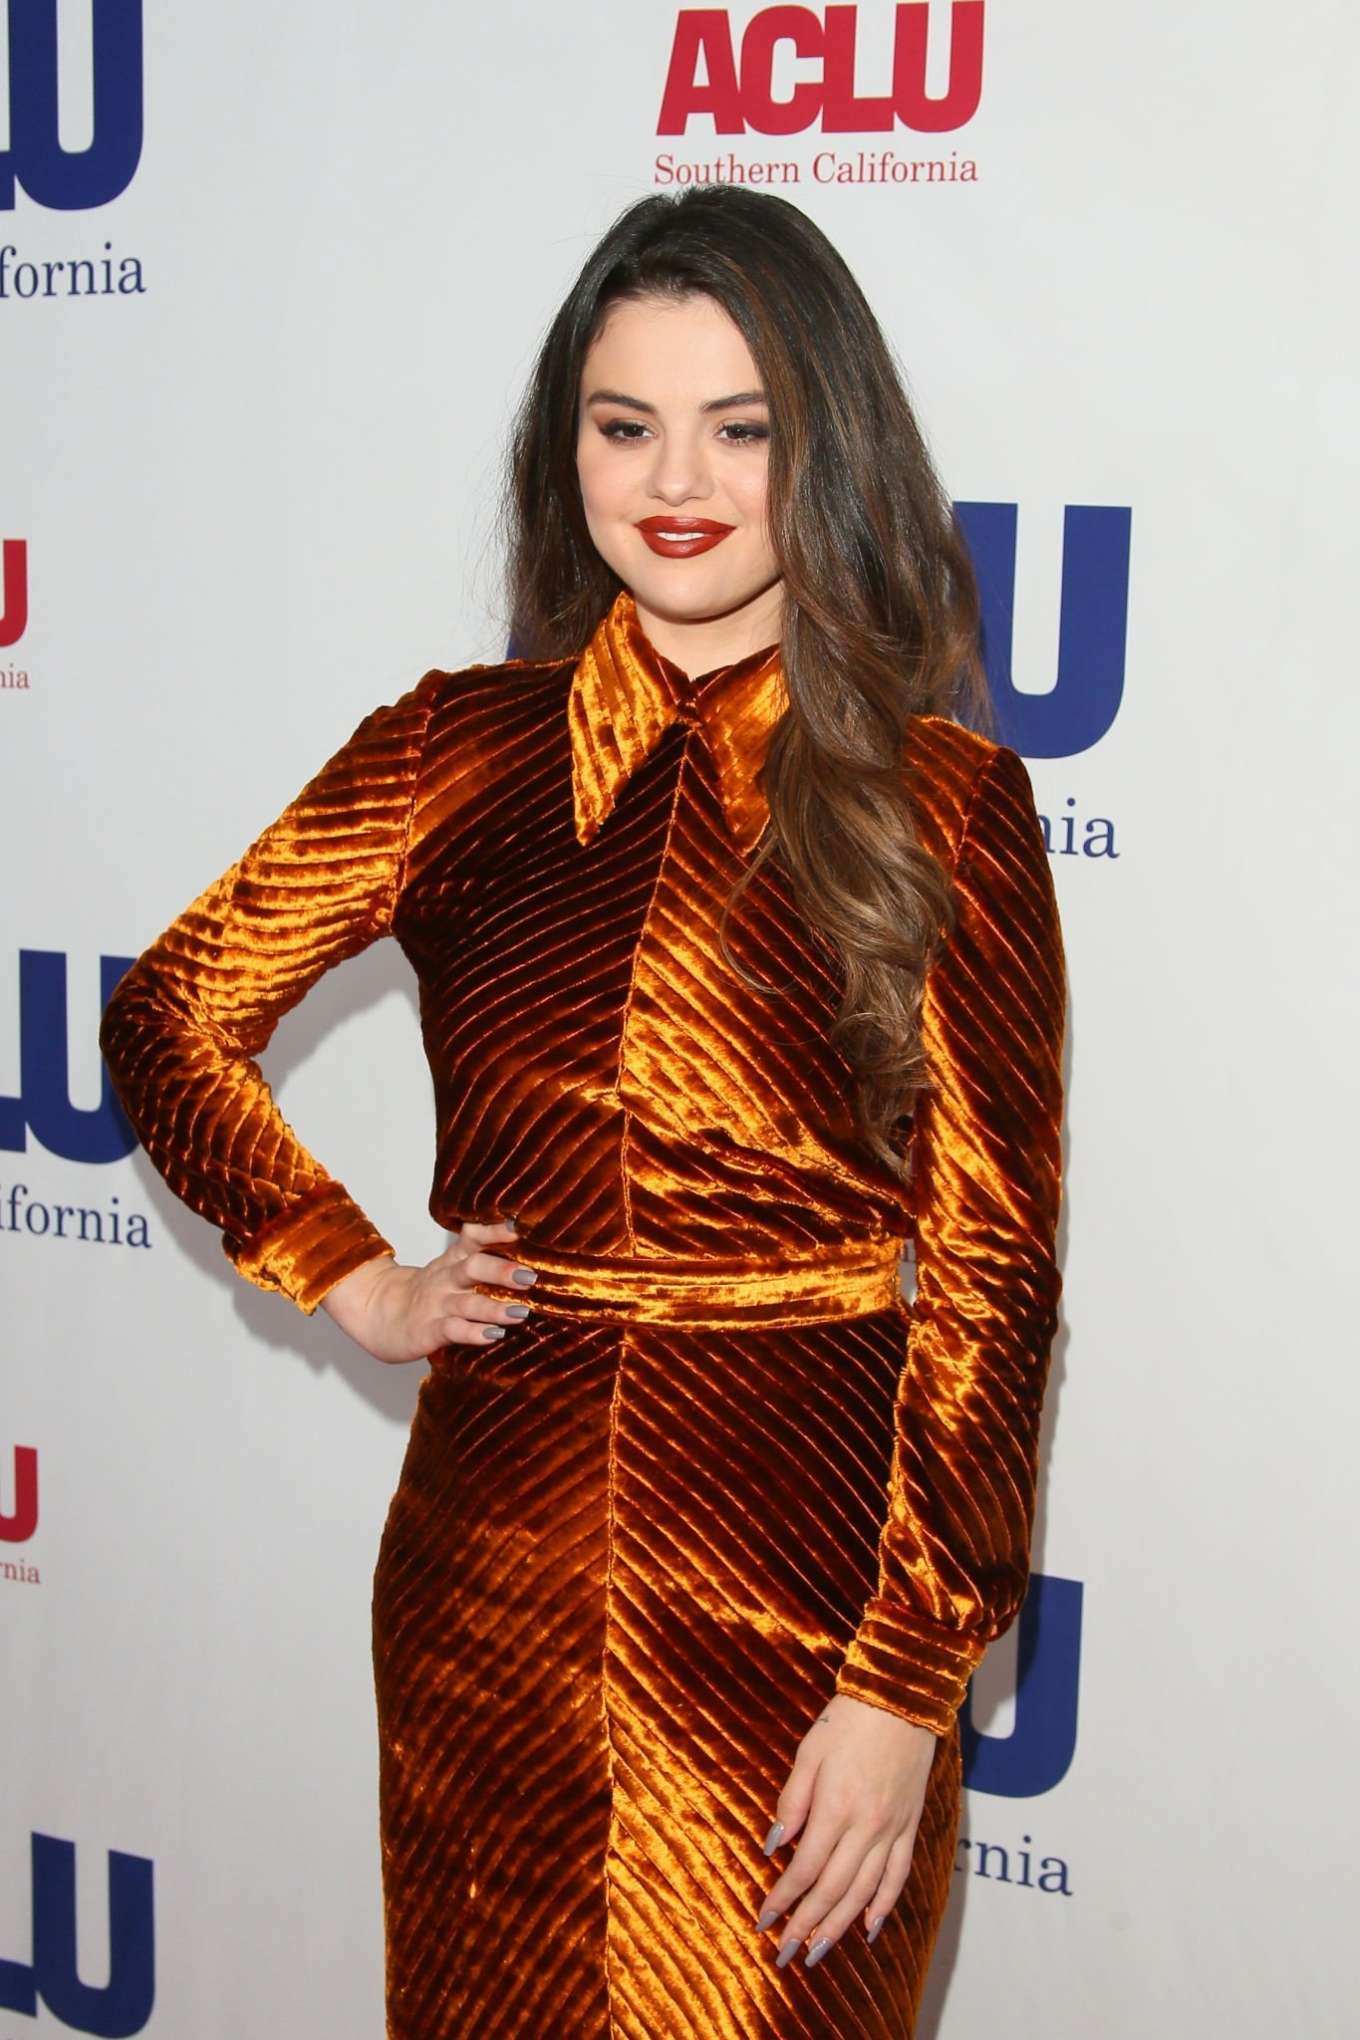 Selena Gomez - ACLU SoCal's Annual Bill Of Rights Dinner in Beverly Hills